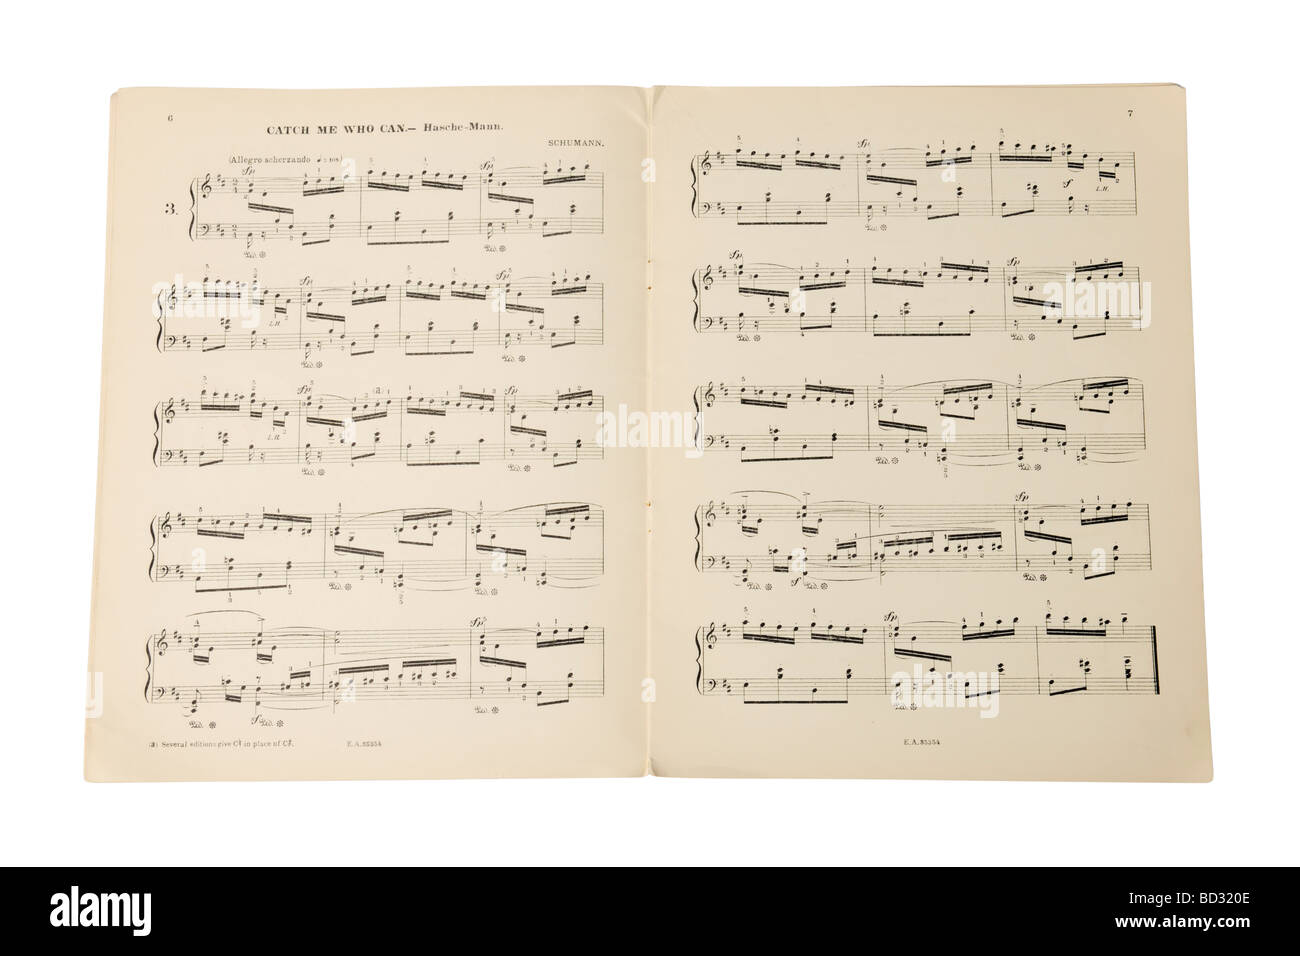 Musical notes book music sheet - Stock Image